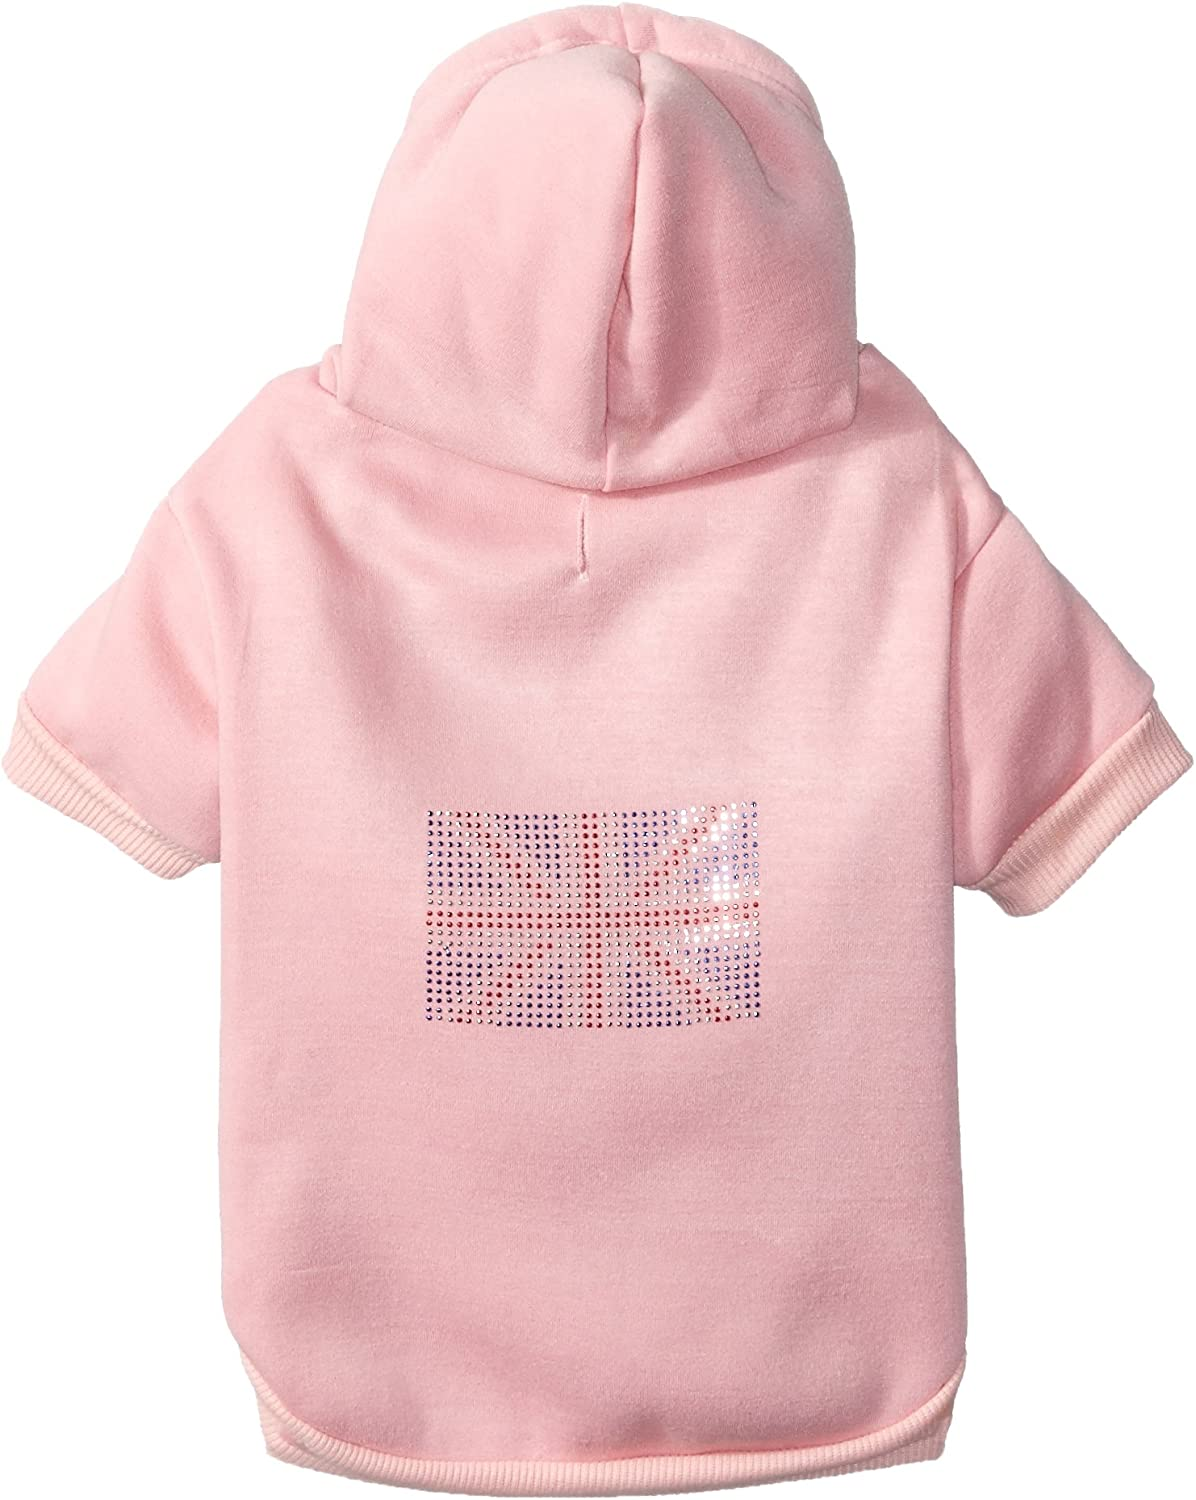 Mirage British Flag Dog Hoodies, XLarge, Pink